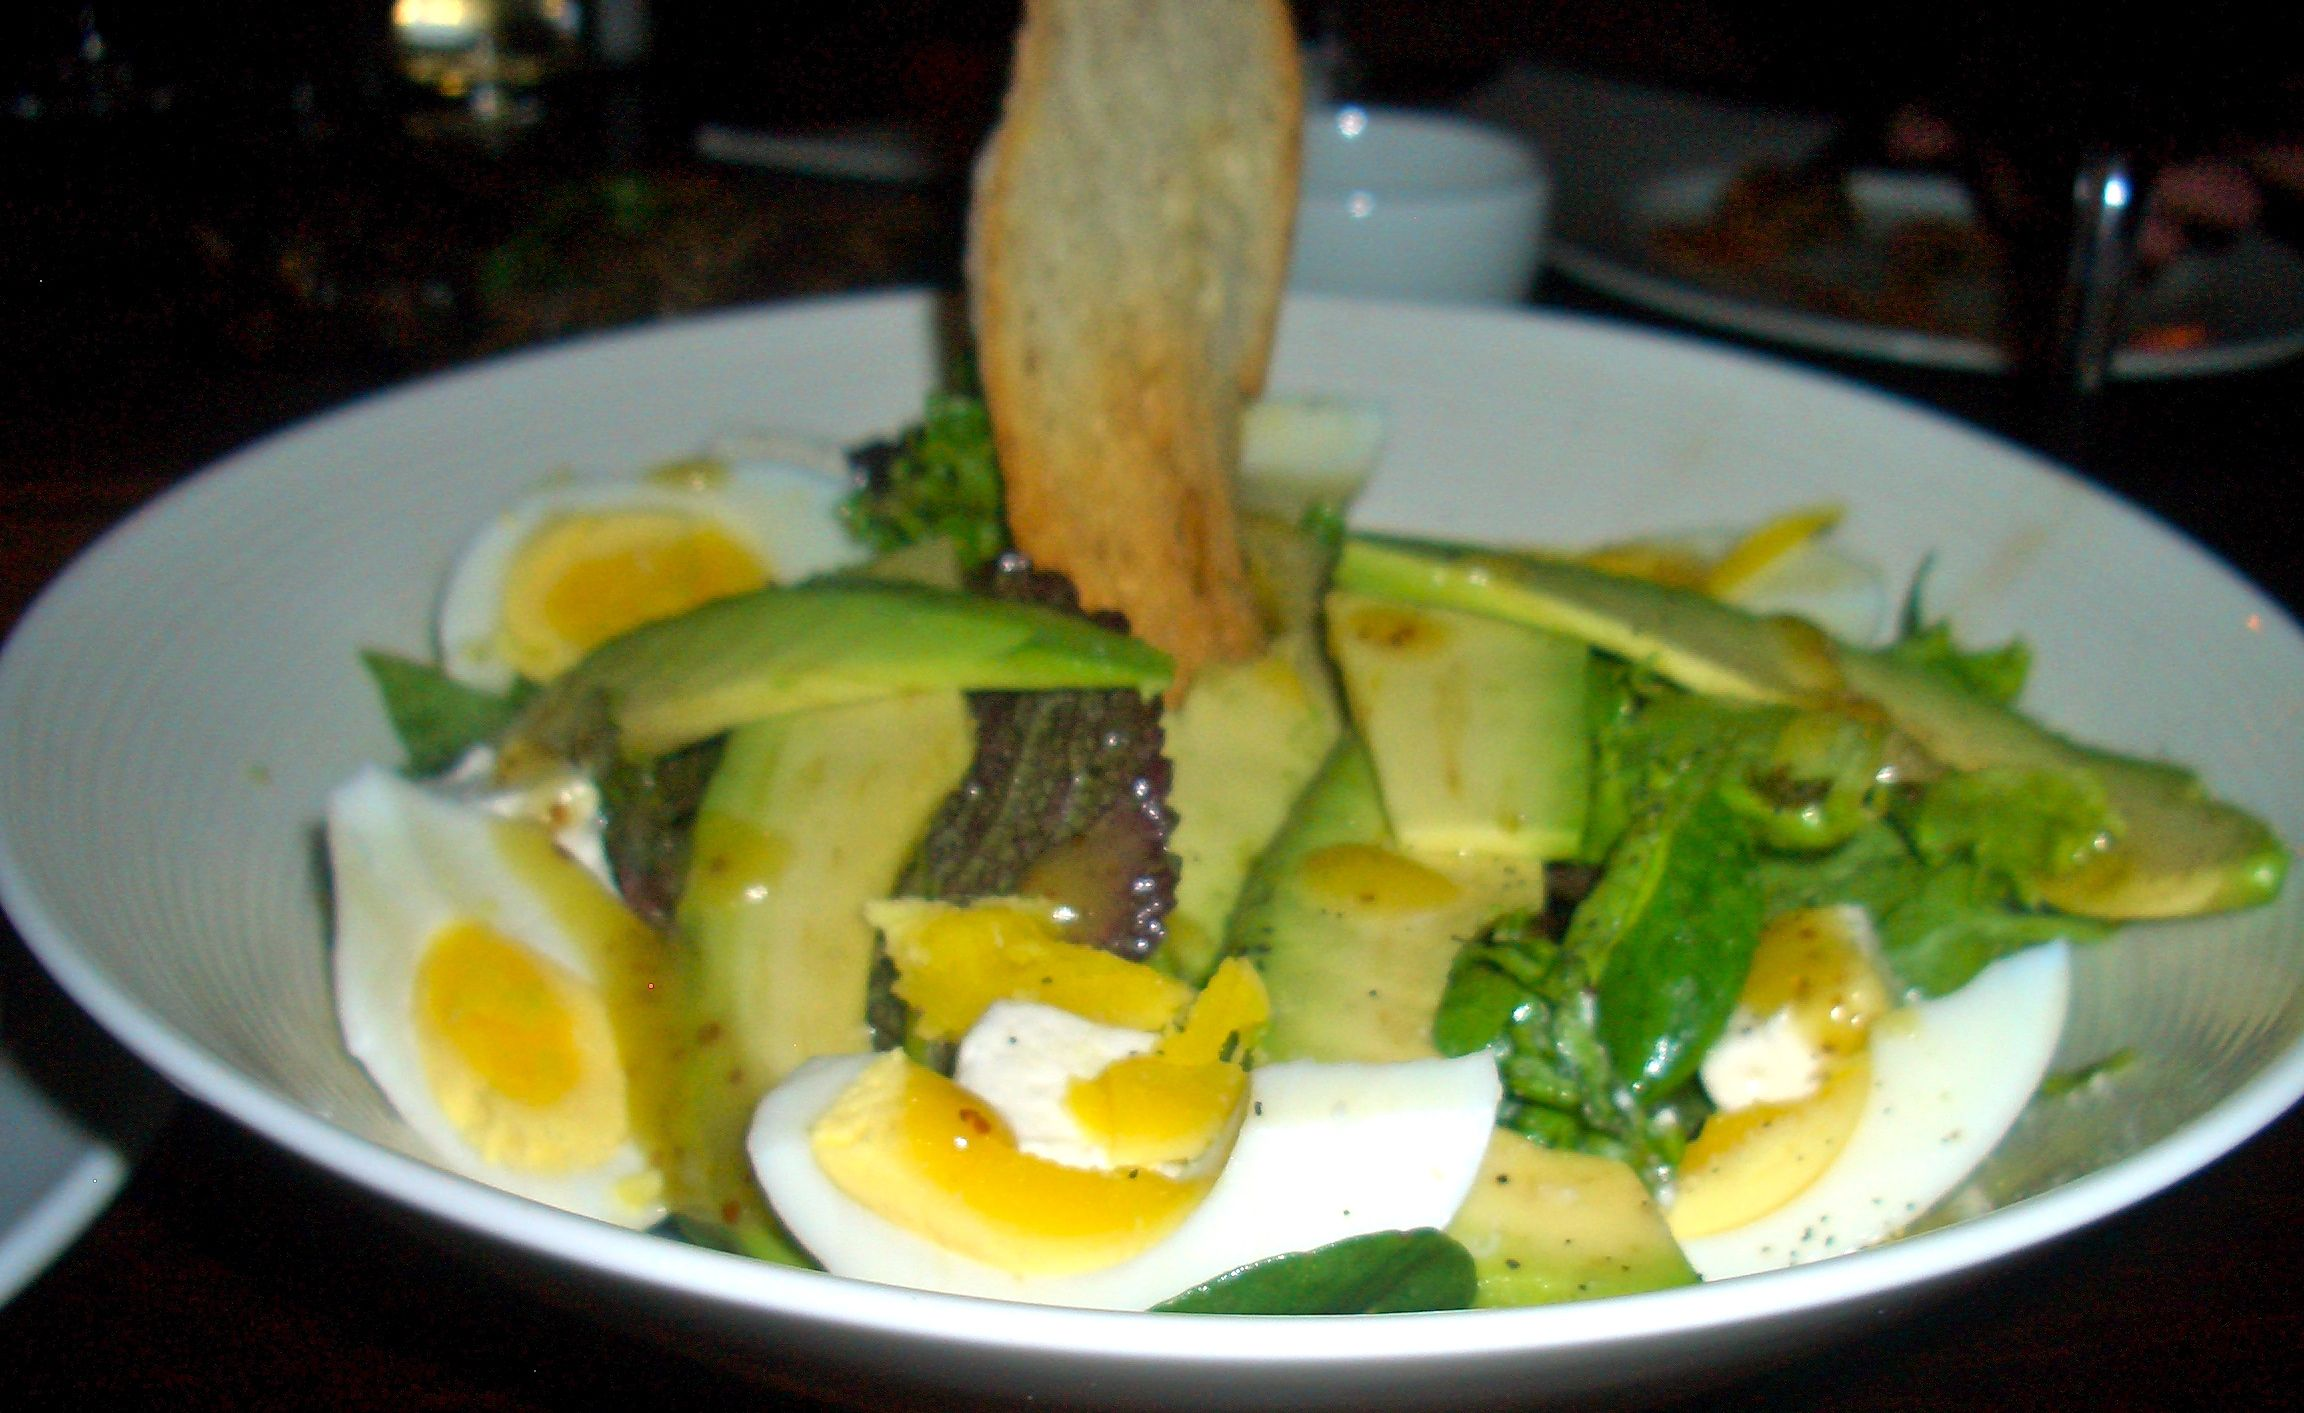 kloof street salad of avo feta and boiled egg with a honey mustard dressing aqua shard subdued lighting